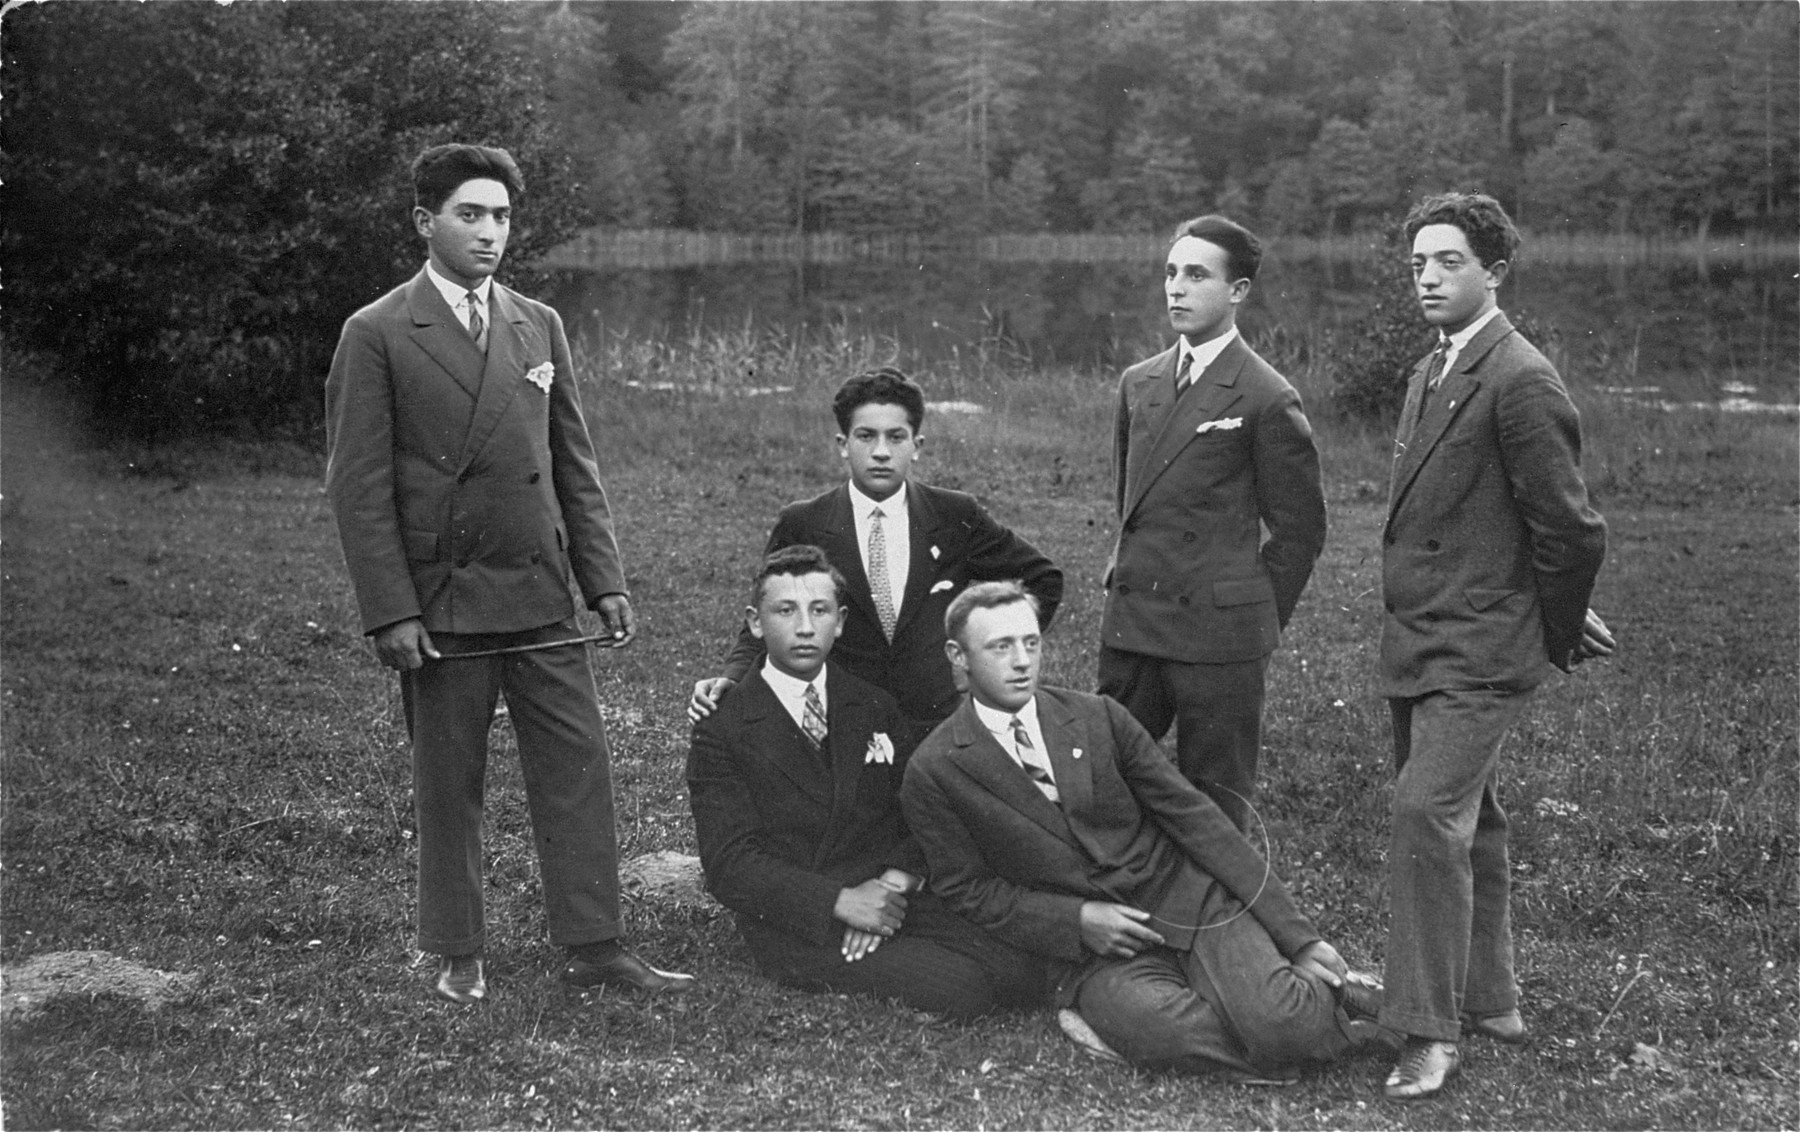 A group of young Jewish men pose in a park in Lithuania. Pictured at the right is the donor's father, Eliezer Kaplan.